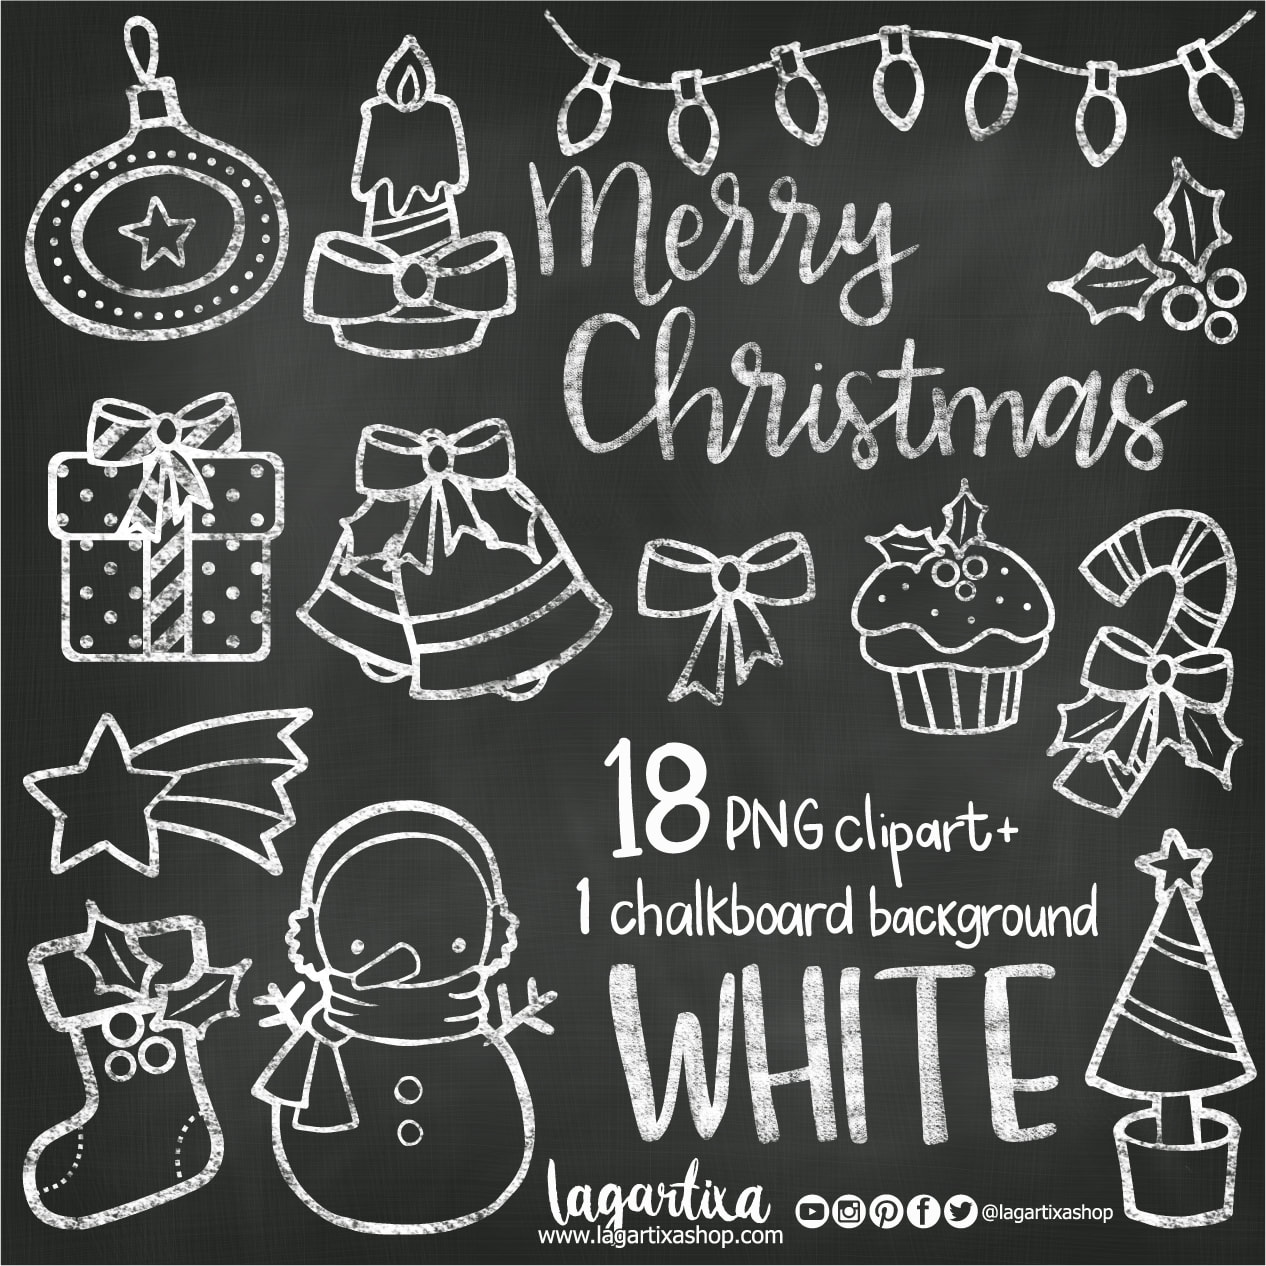 Christmas Chalkboard White Chalk Clipart Snowman Boot Star Christmas Tree  Gifts Snow Flakes Candy Cane Bells Merry Christmas PNG gifts cards.